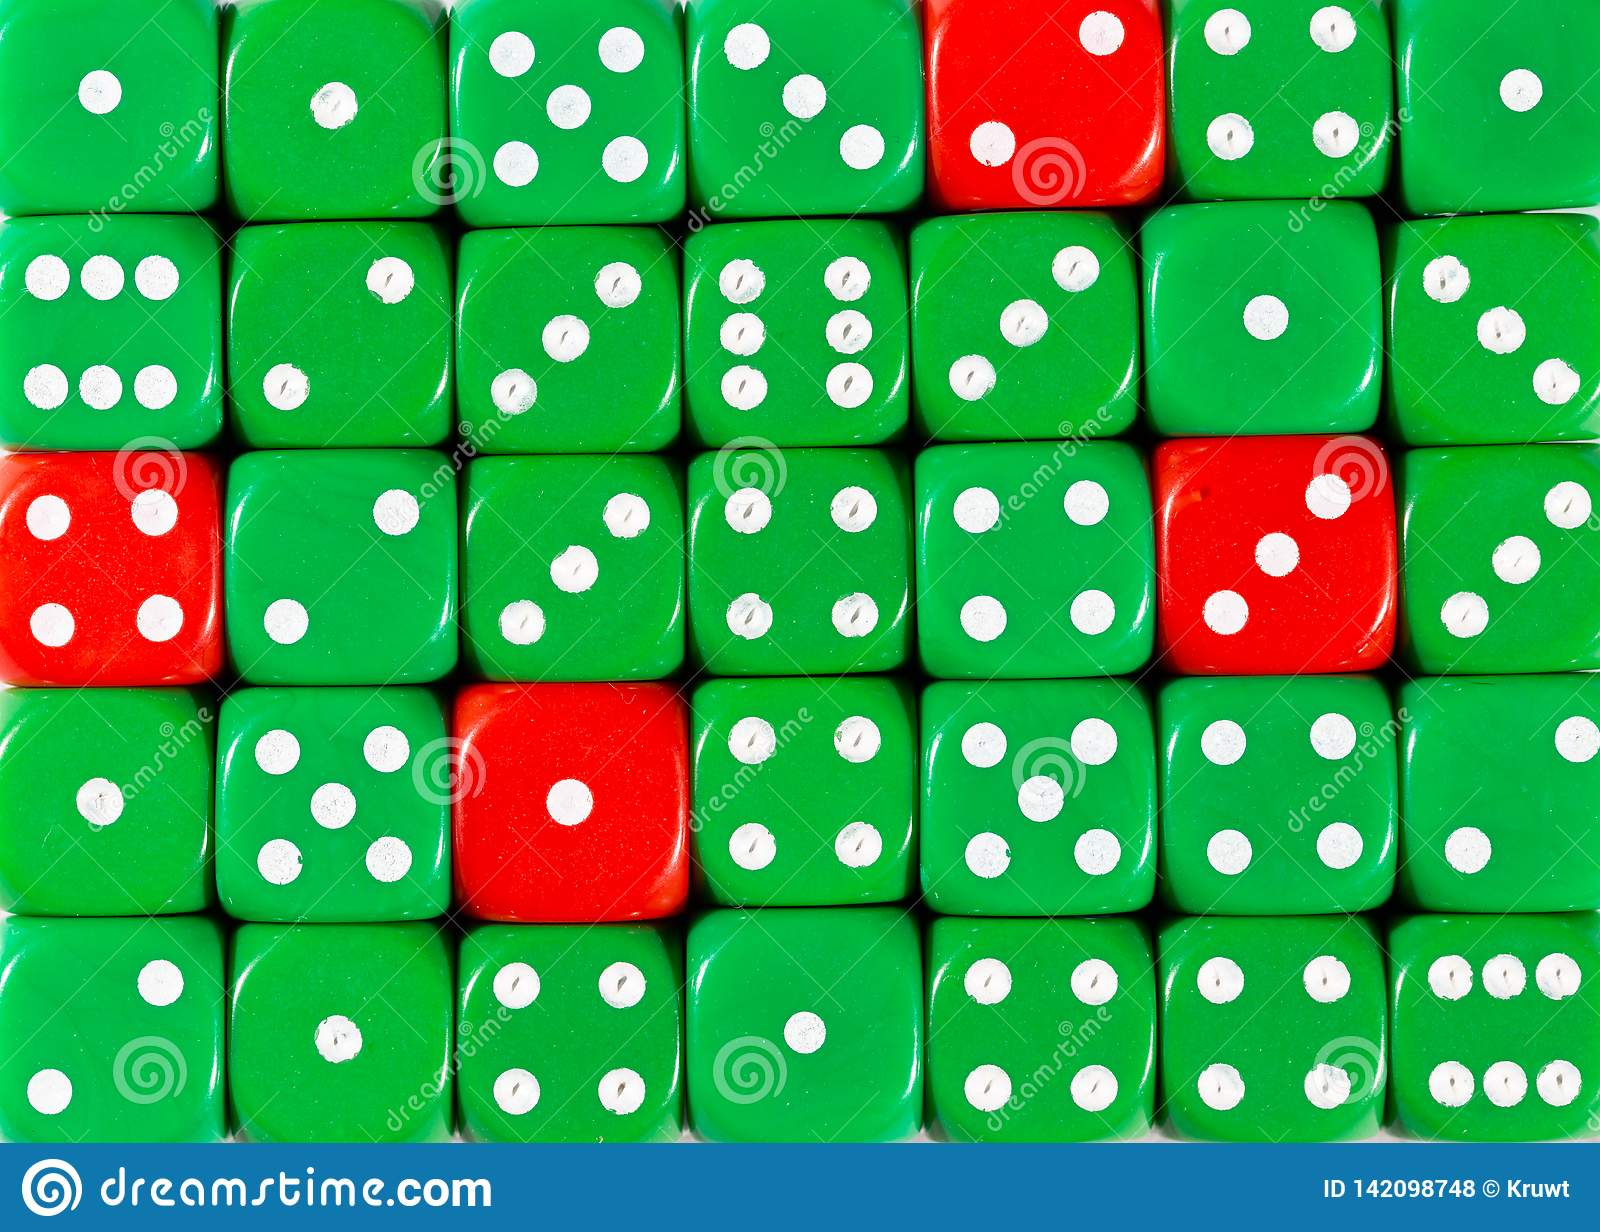 Background of random ordered green dices with four red cubes